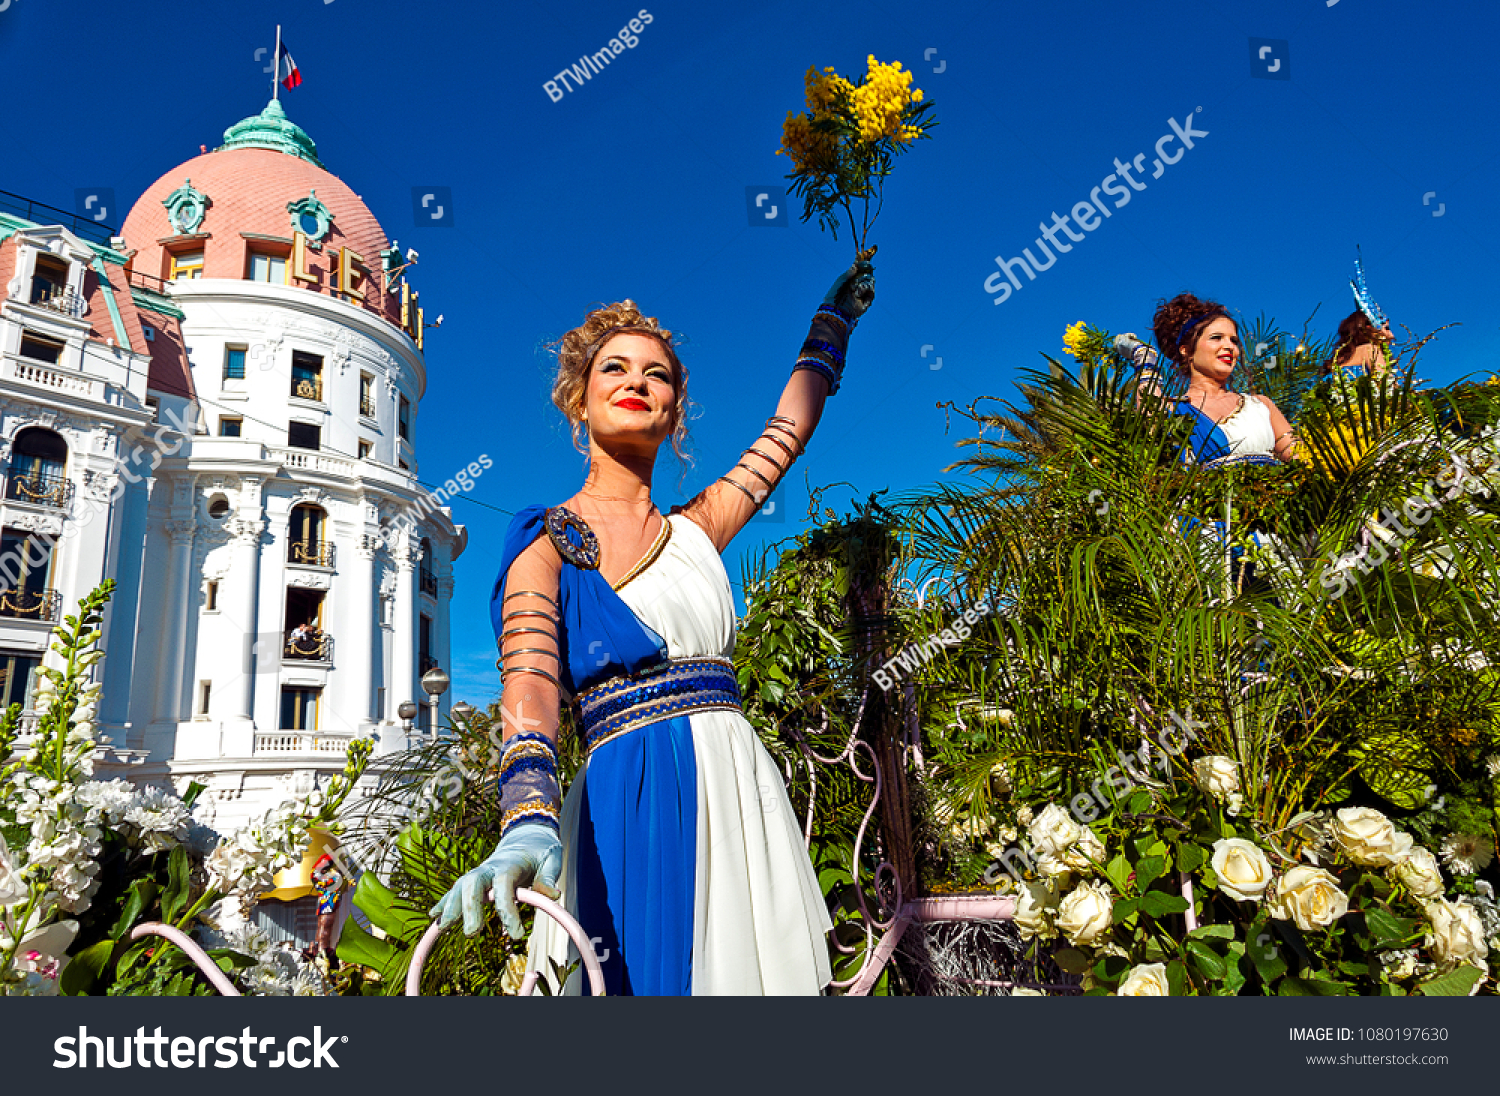 France, Alpes-Maritimes (06), Nice. Carnival, flower battle on the Promenade des Anglais #1080197630